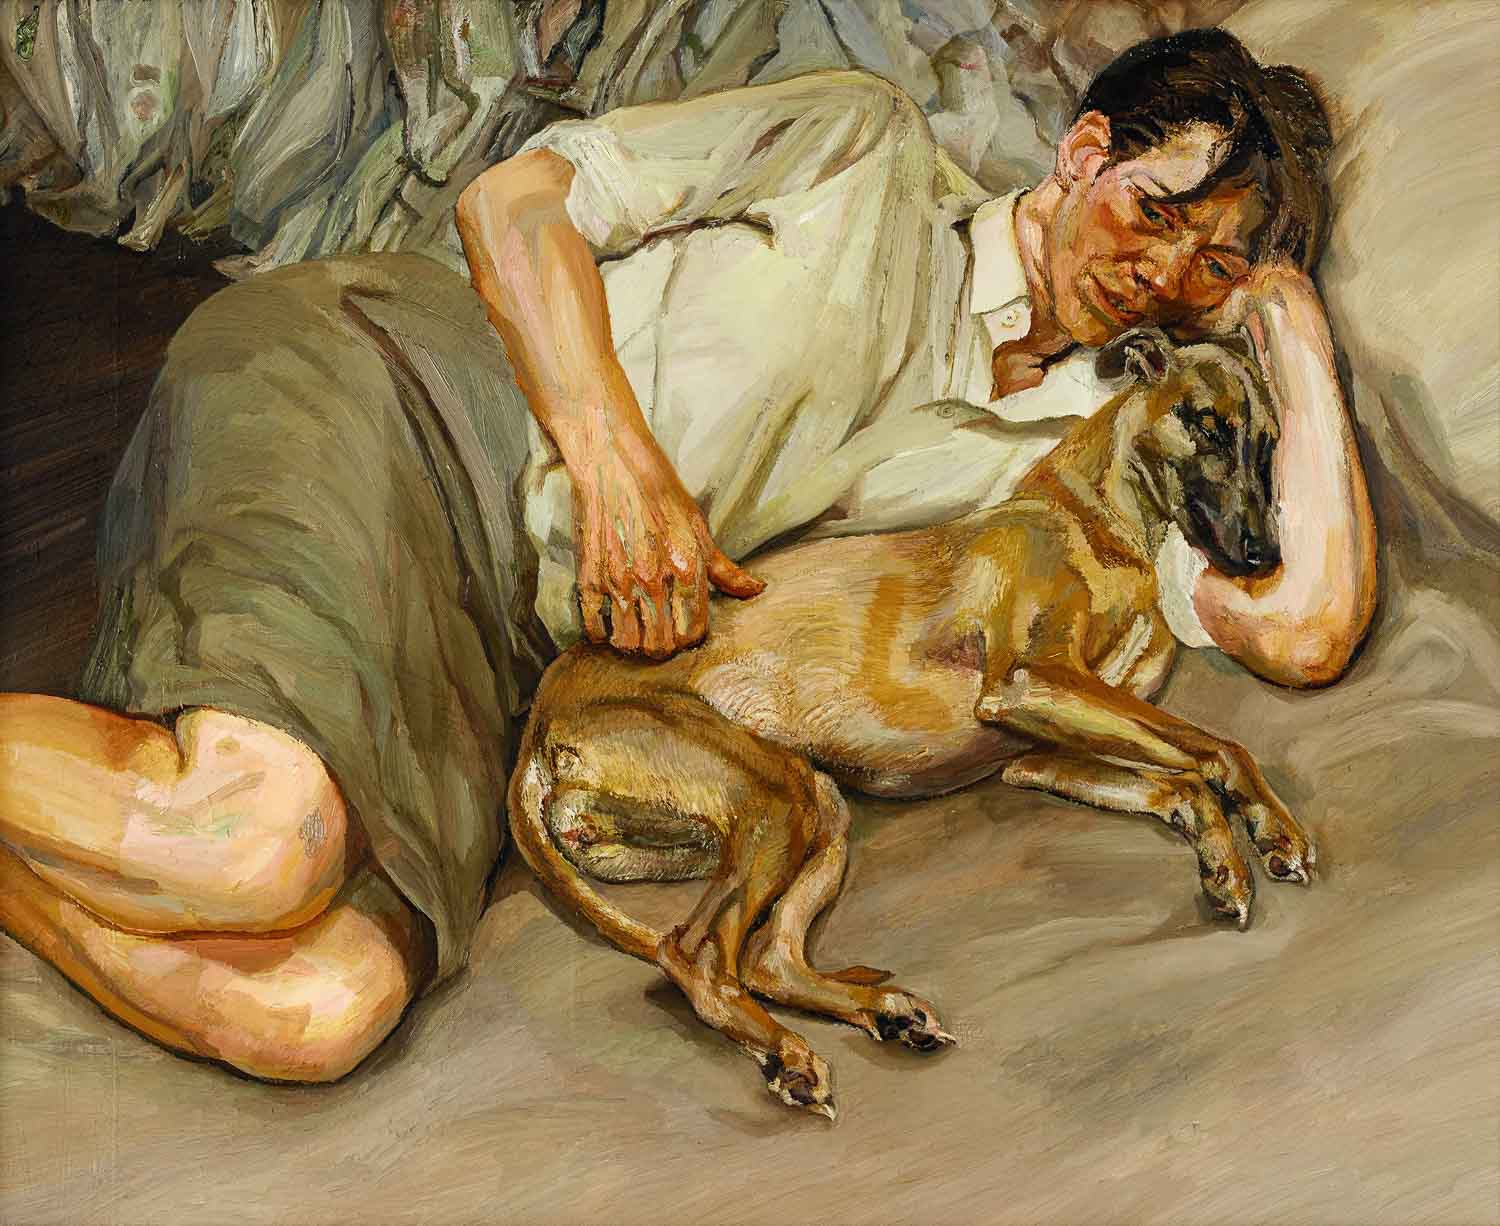 Lucian Freud: Double Portrait, 1988-90 Öl auf Leinwand, 113,3 x 134,62 cm © The Lucian Freud Archive/Bridgeman Images UBS Art Collection